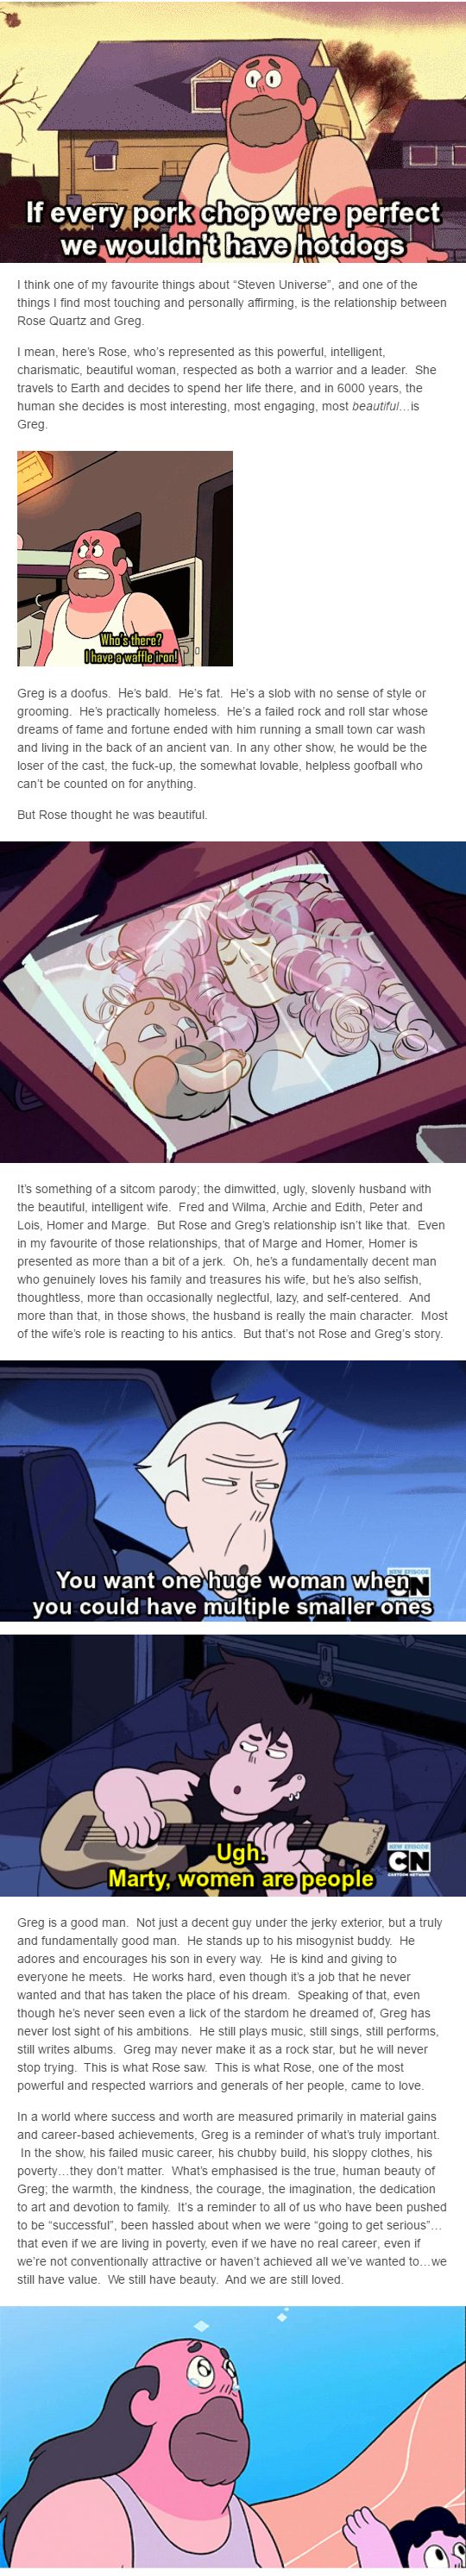 A beautiful analysis of Greg Universe and his relationship with Rose Quartz.